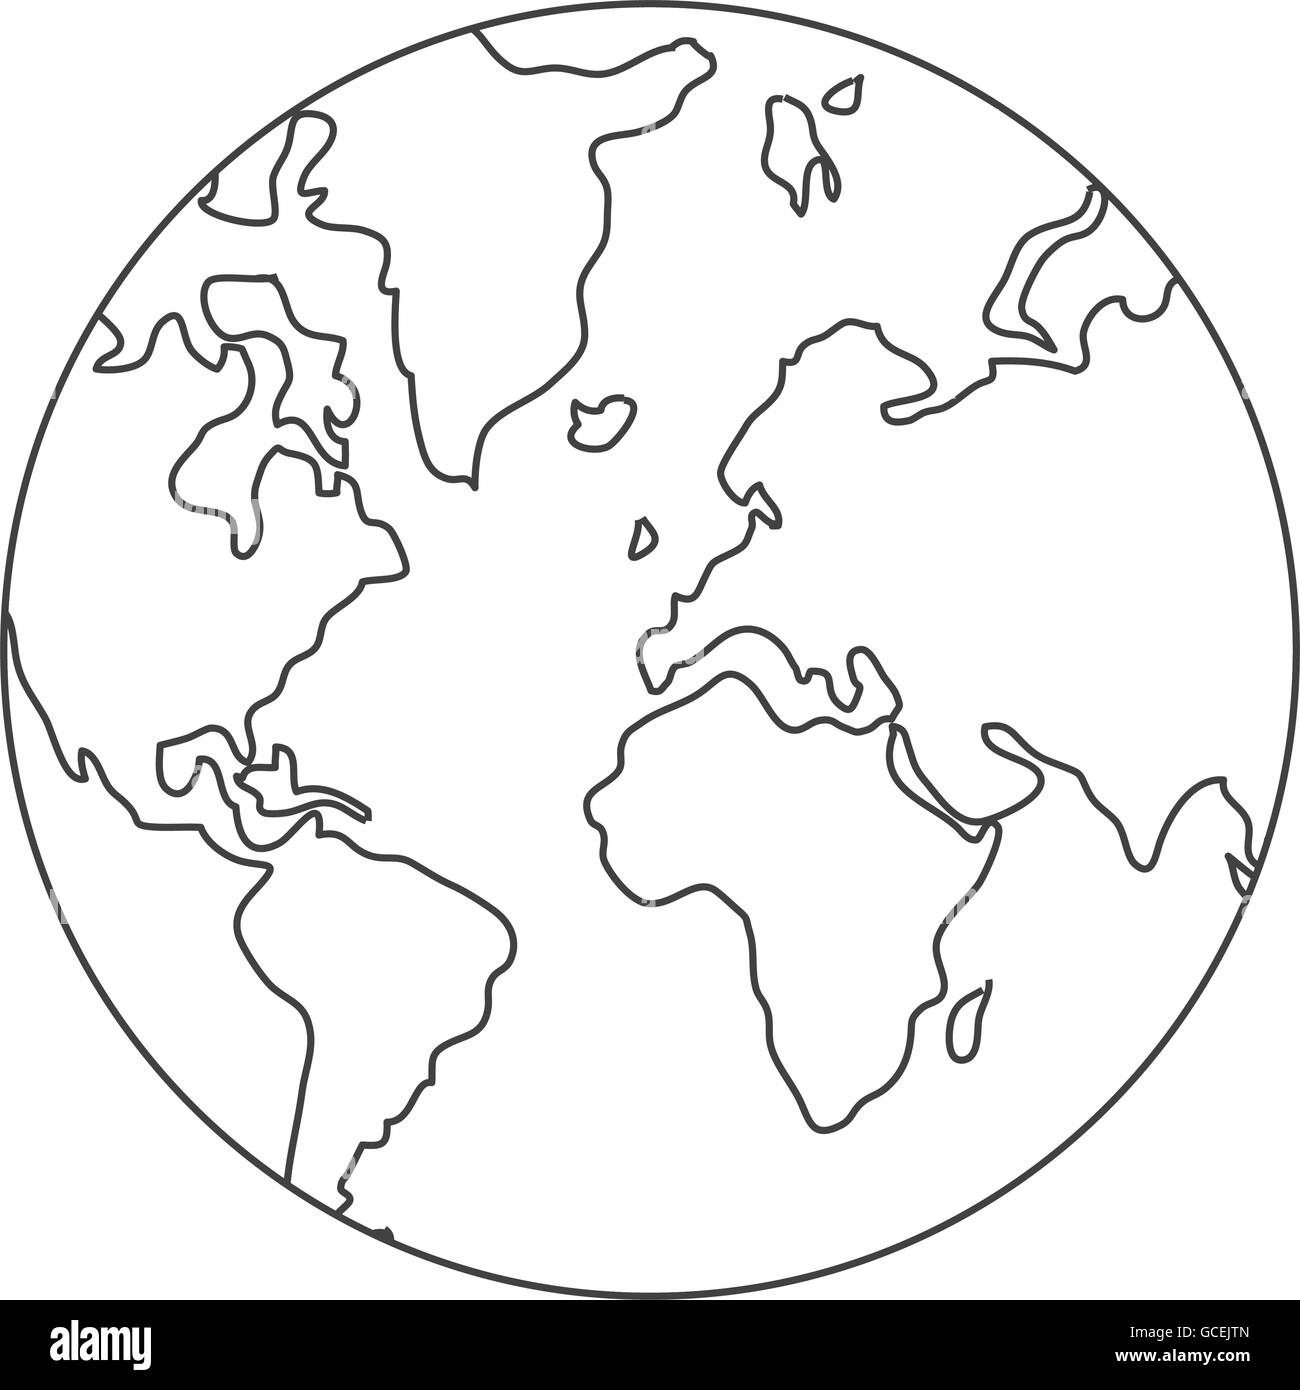 Line Drawing World Map : World map globe earth icon stock vector art illustration